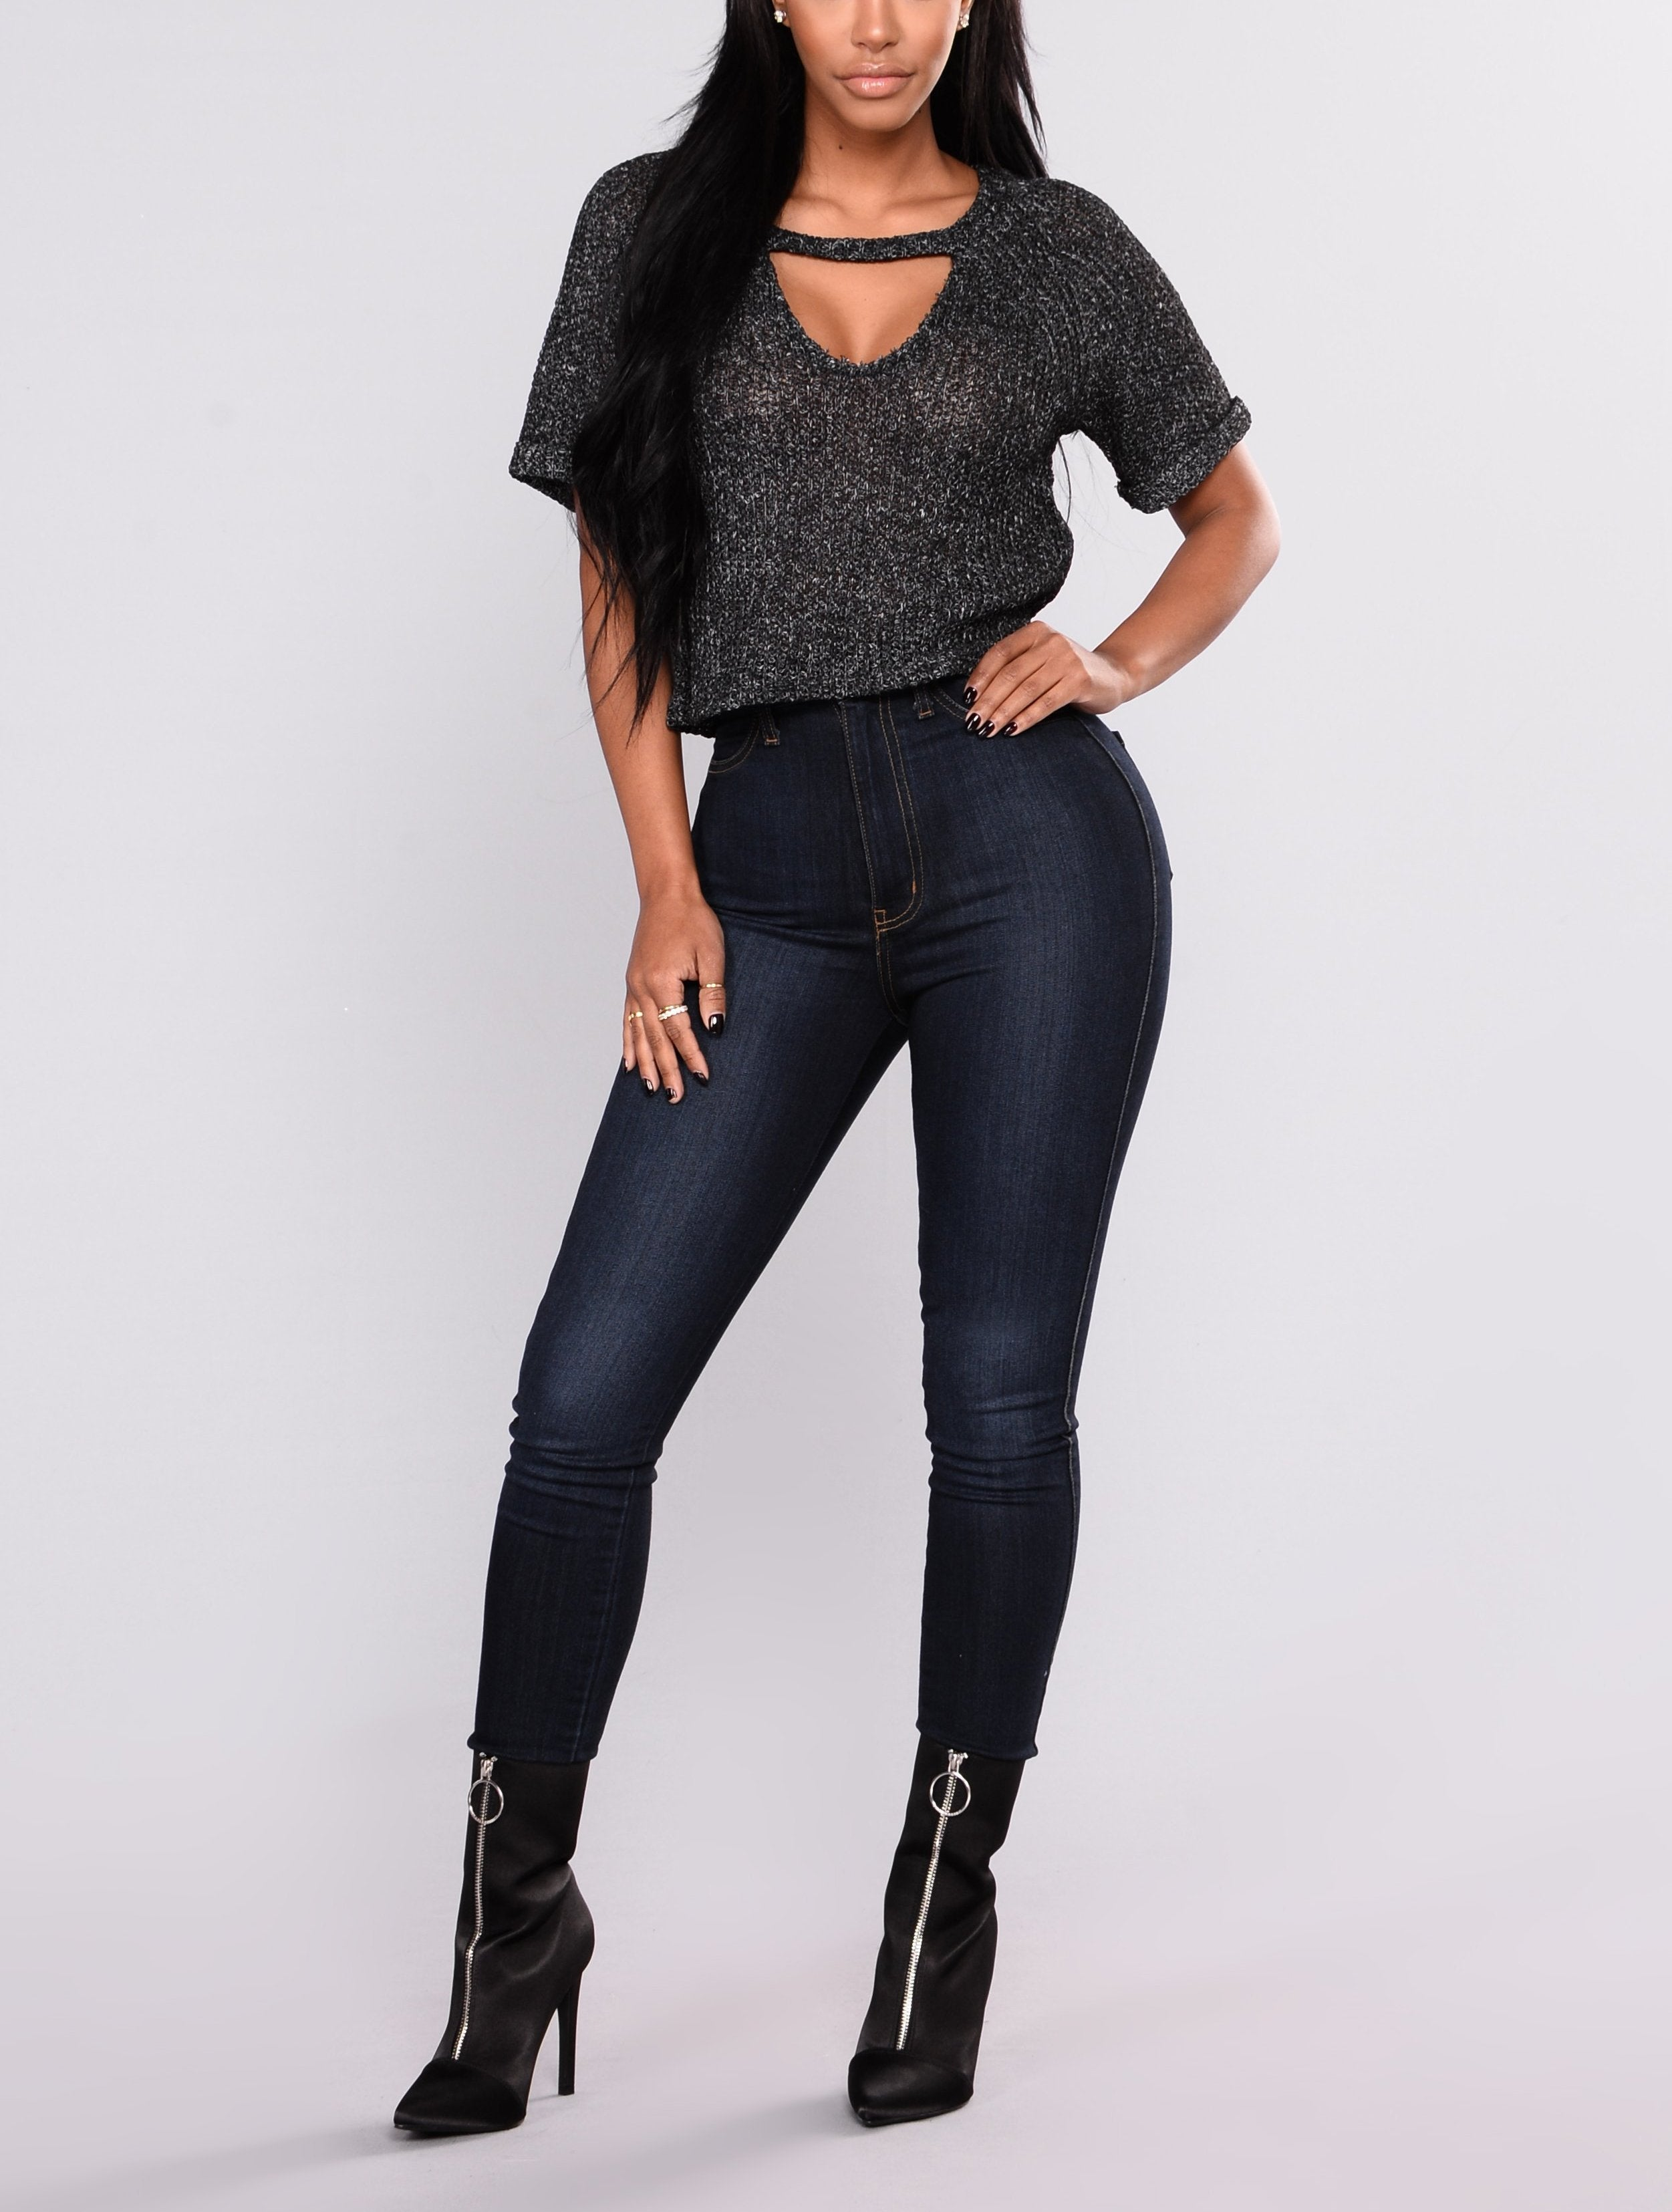 Short Sleeve V Neck Cut Out Sweater Top in Black